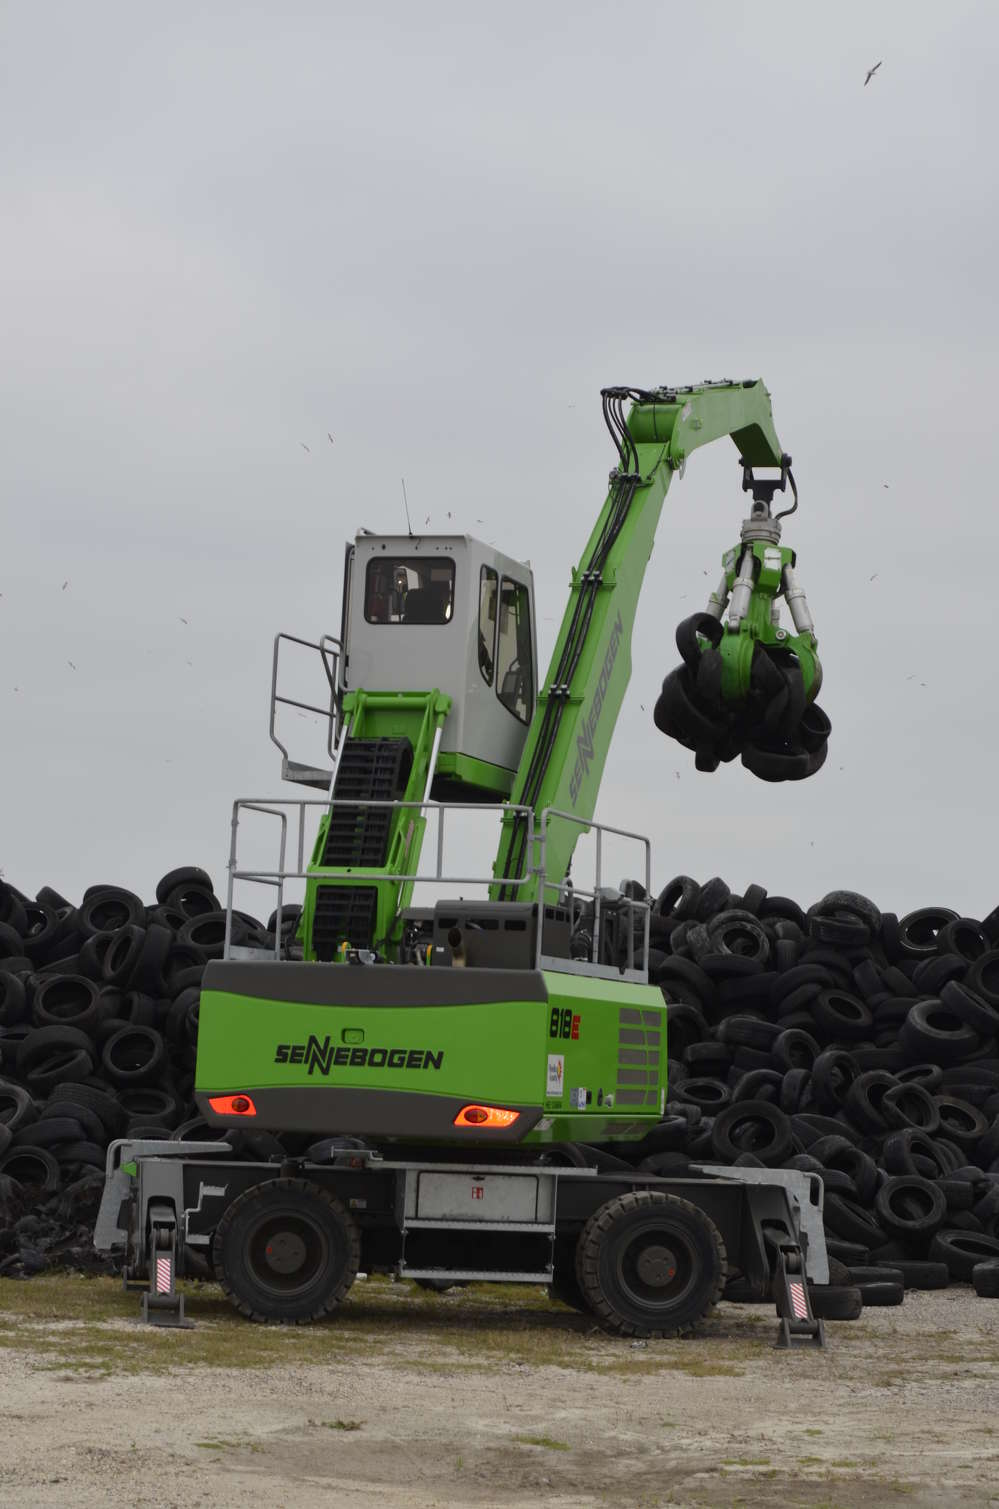 The grapple system of the Sennebogen 818 E is ideally suited for handling tires.